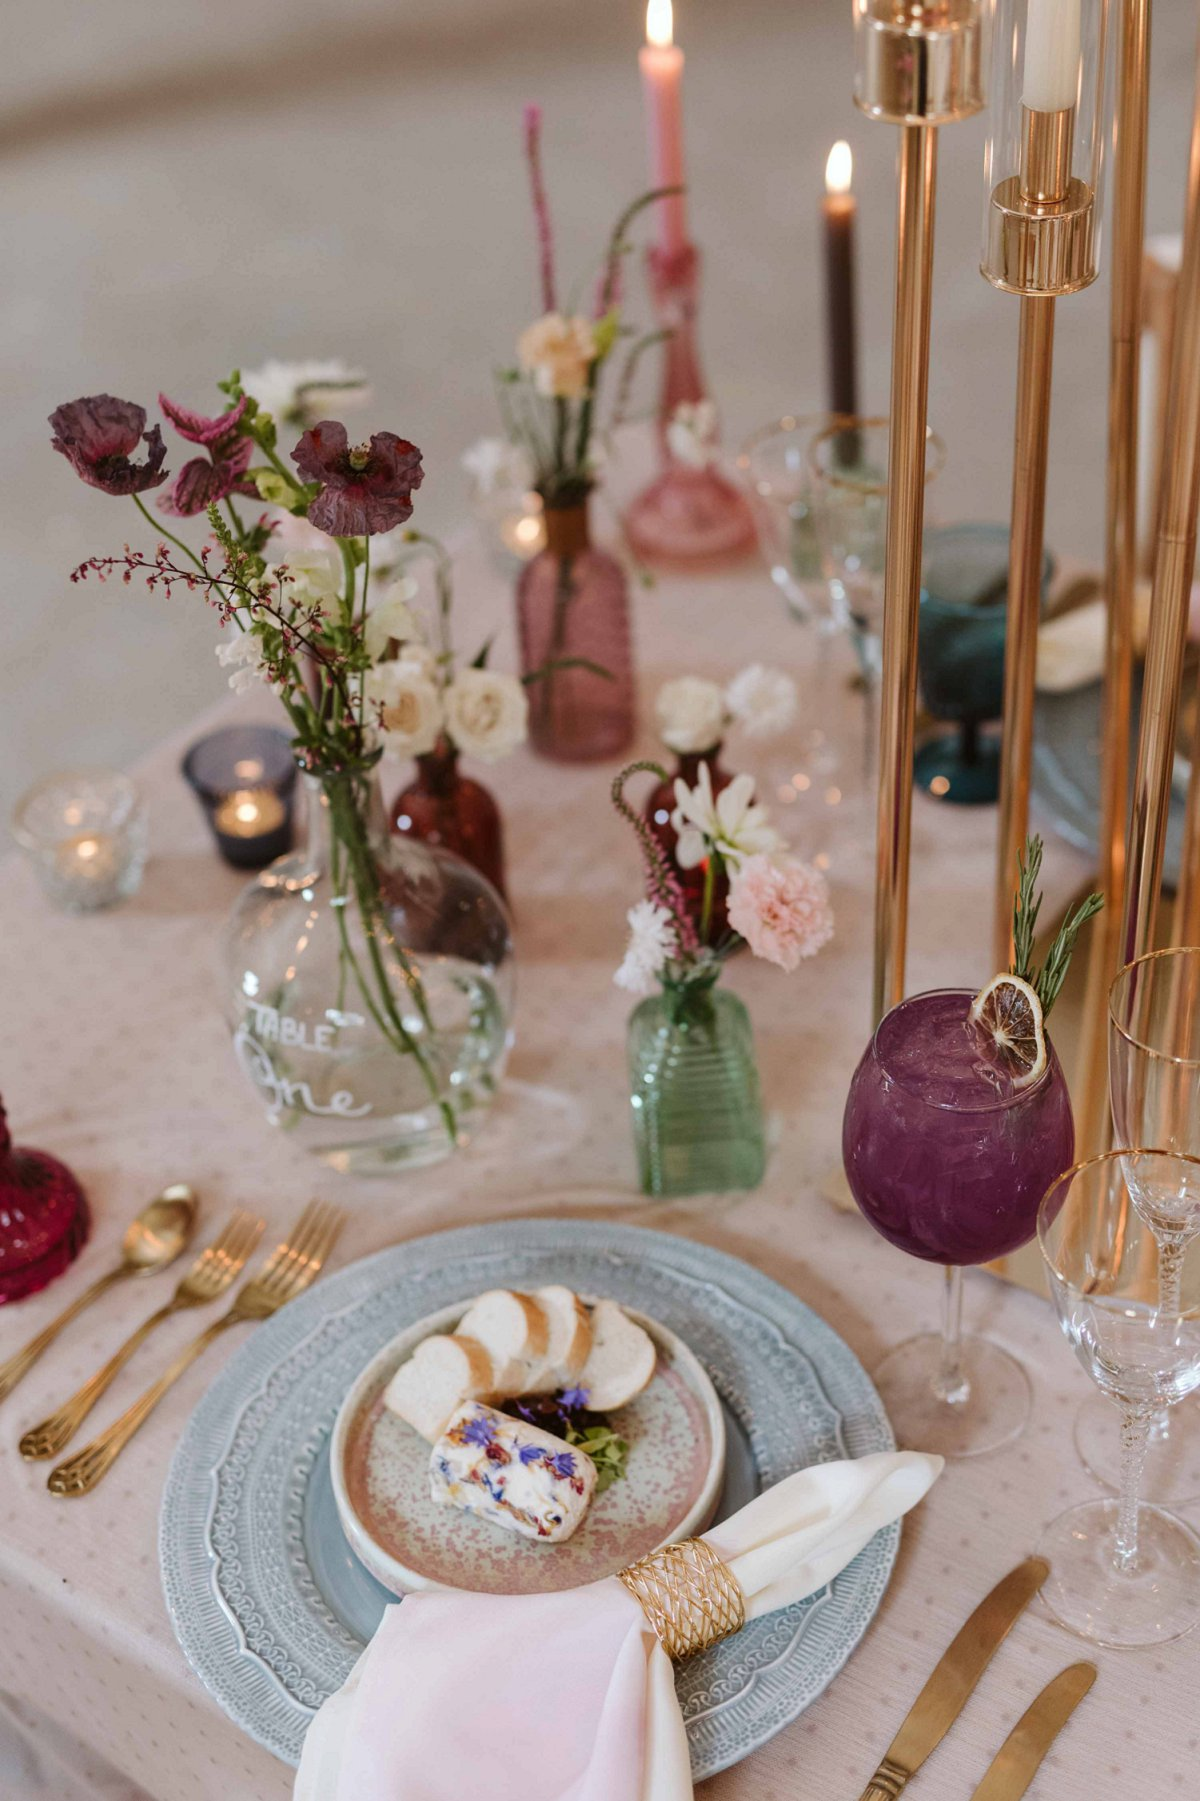 An Eclectic & Elegant Wedding Inspiration Shoot at Wold View Farm (c) Freya Raby Photography (38)